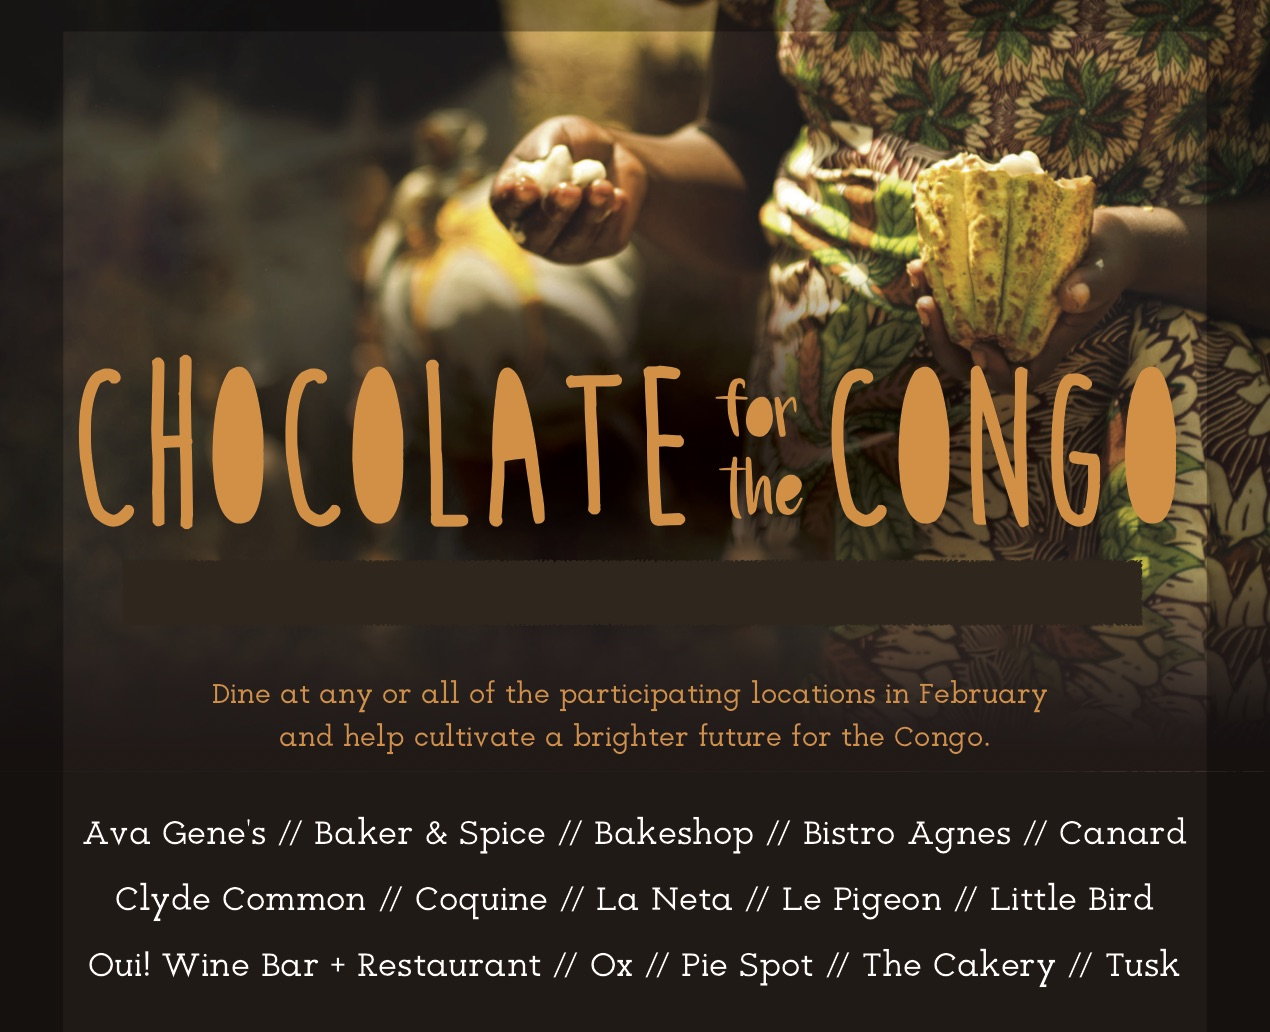 Chocolate for Congo Flyer 2019 (1).jpg